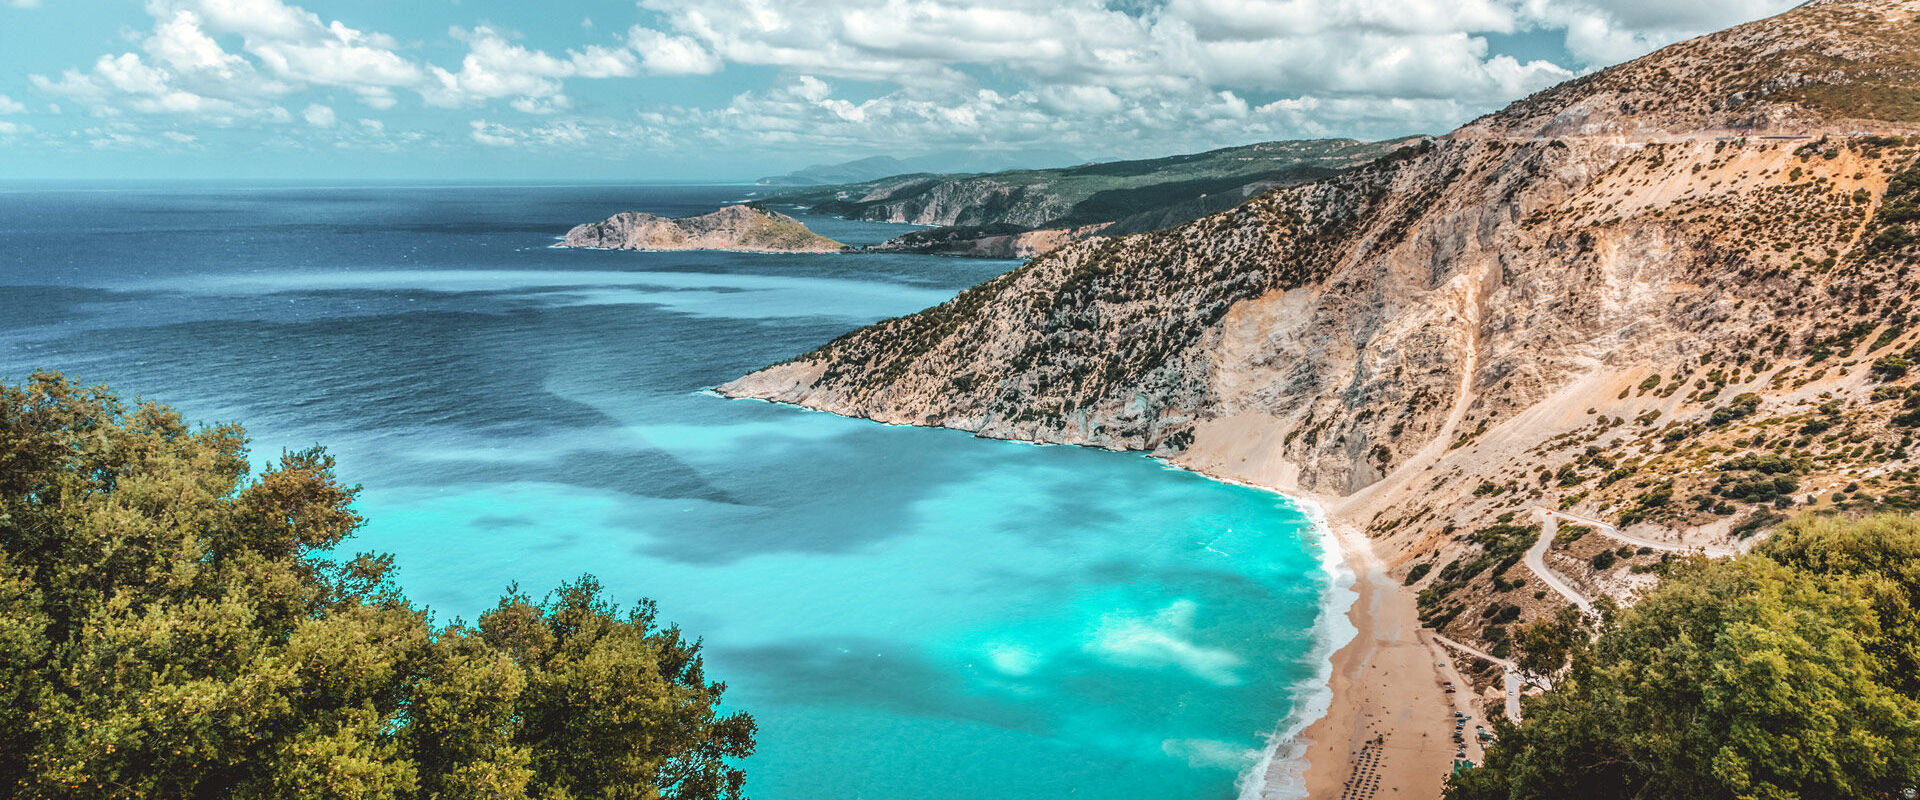 Beyond the serenity of the shimmering sea blues and greens, you can feel the immense power of nature everywhere - Myrtos Kefalonia